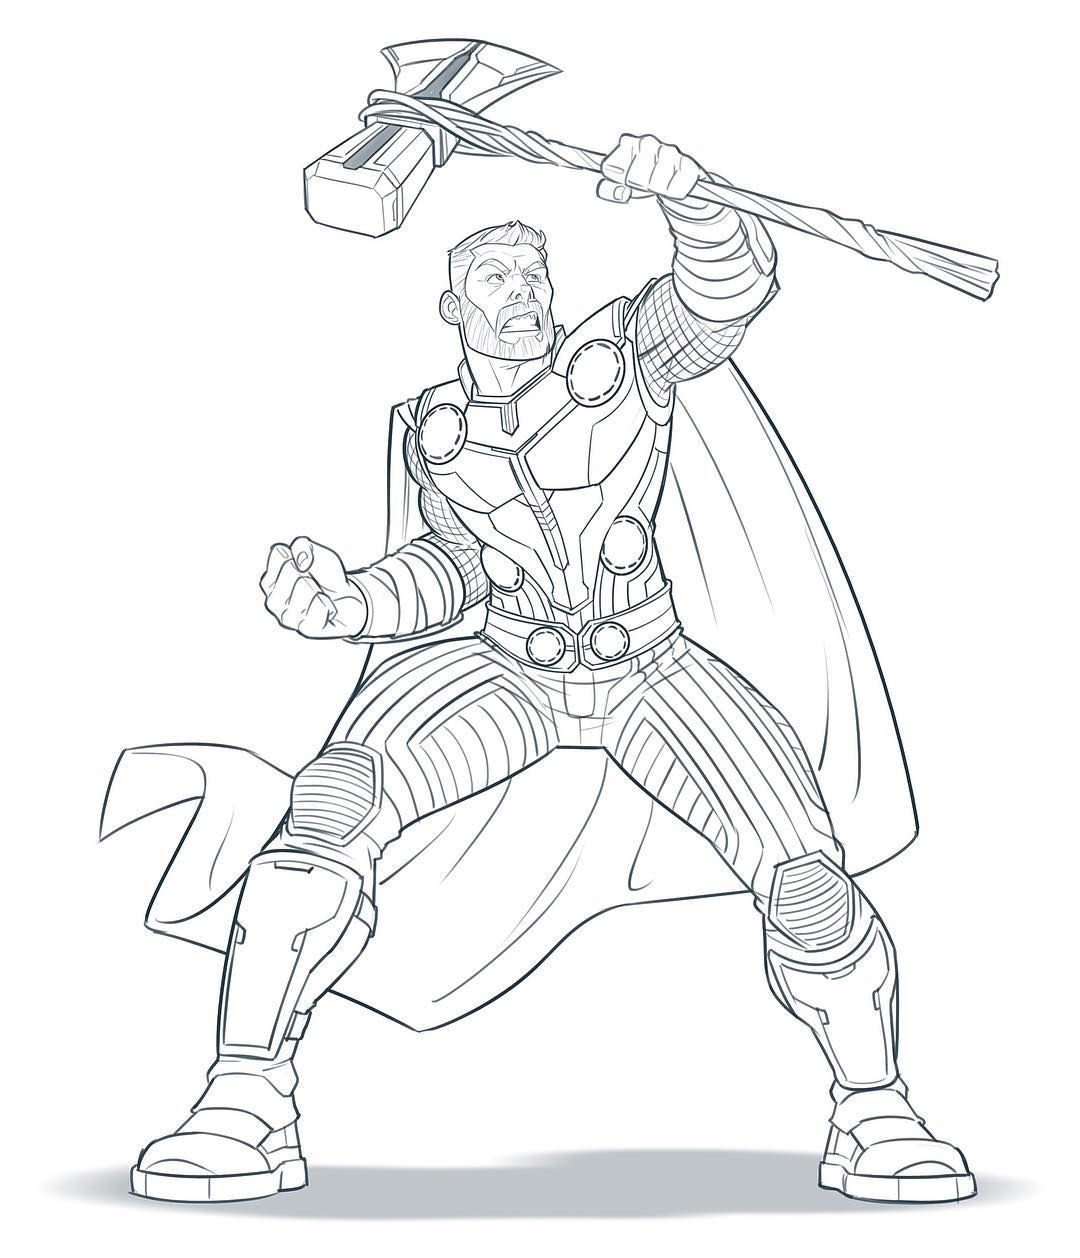 Progress Has Been A Bit Slow On My Avengers 4 Artwork But Today I Was Able To Draw Thor Wielding Stormbrea In 2021 Marvel Coloring Thor Artwork Avengers Coloring Pages